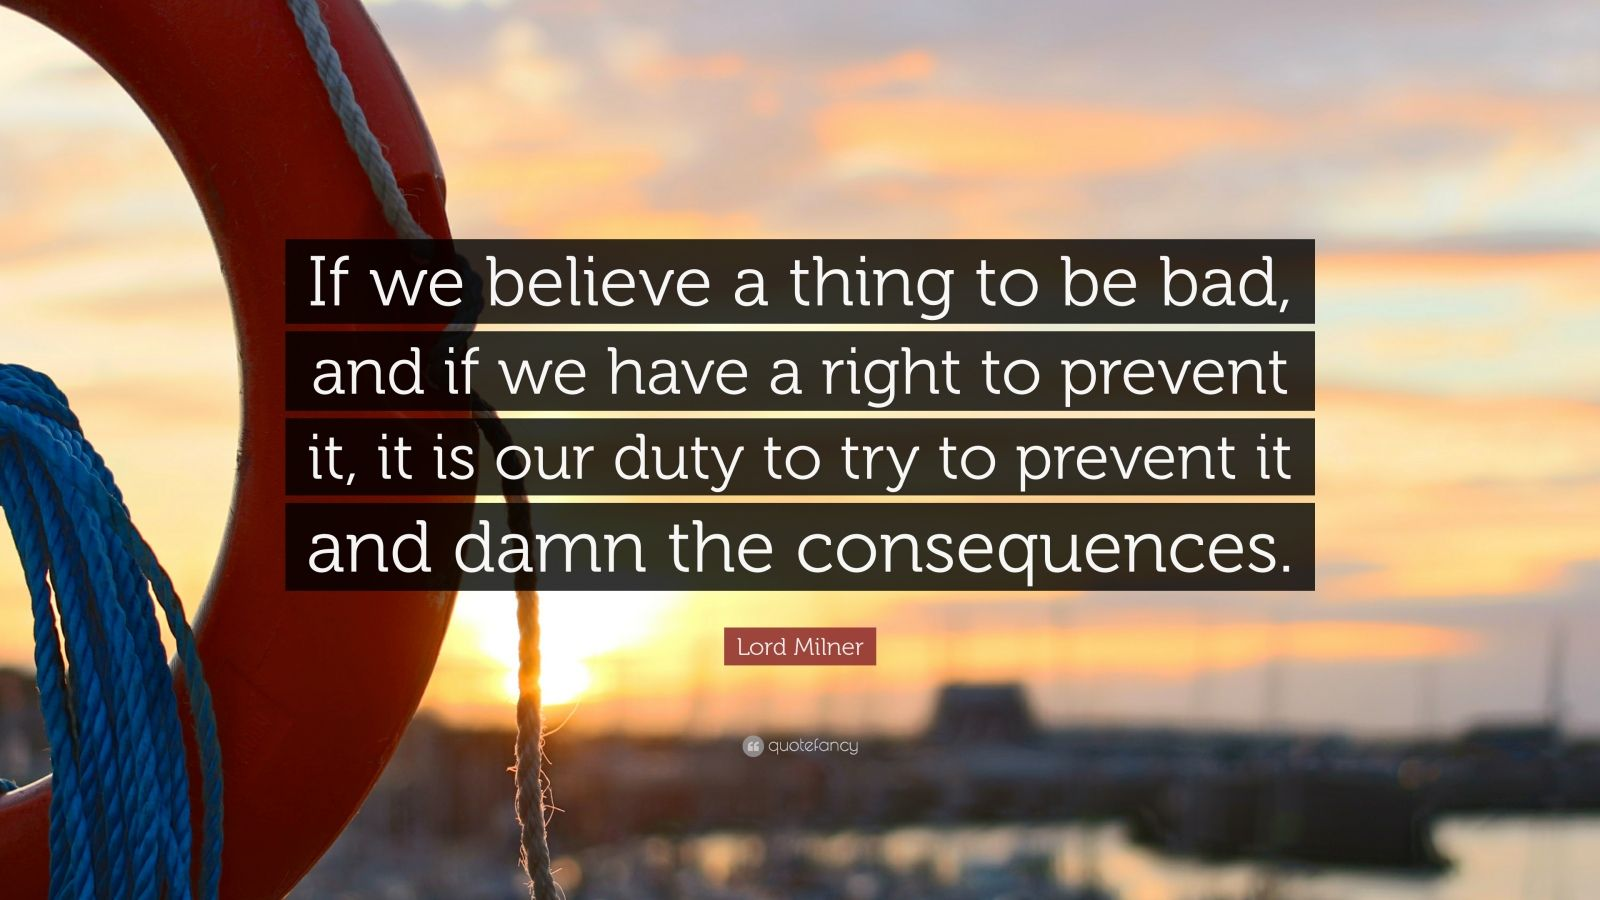 "Lord Milner Quote: ""If we believe a thing to be bad, and if we have a right to prevent it, it is our duty to try to prevent it and damn the consequences."""